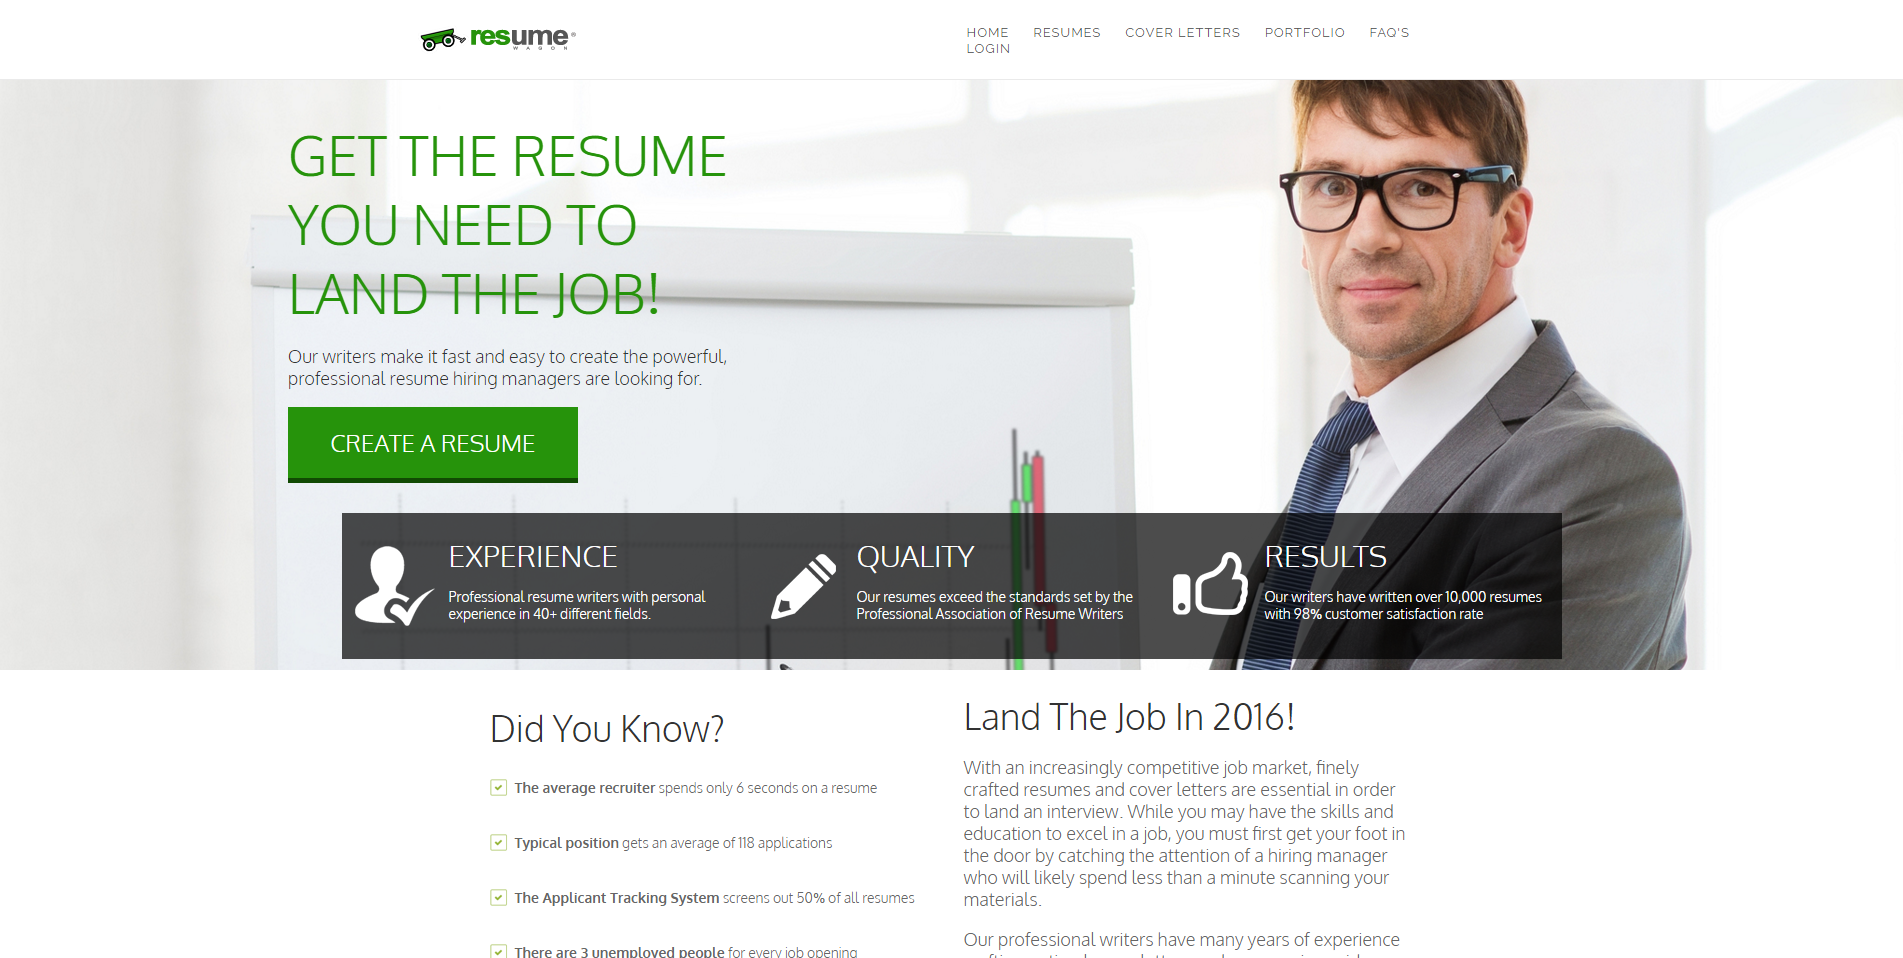 review of resume writing services